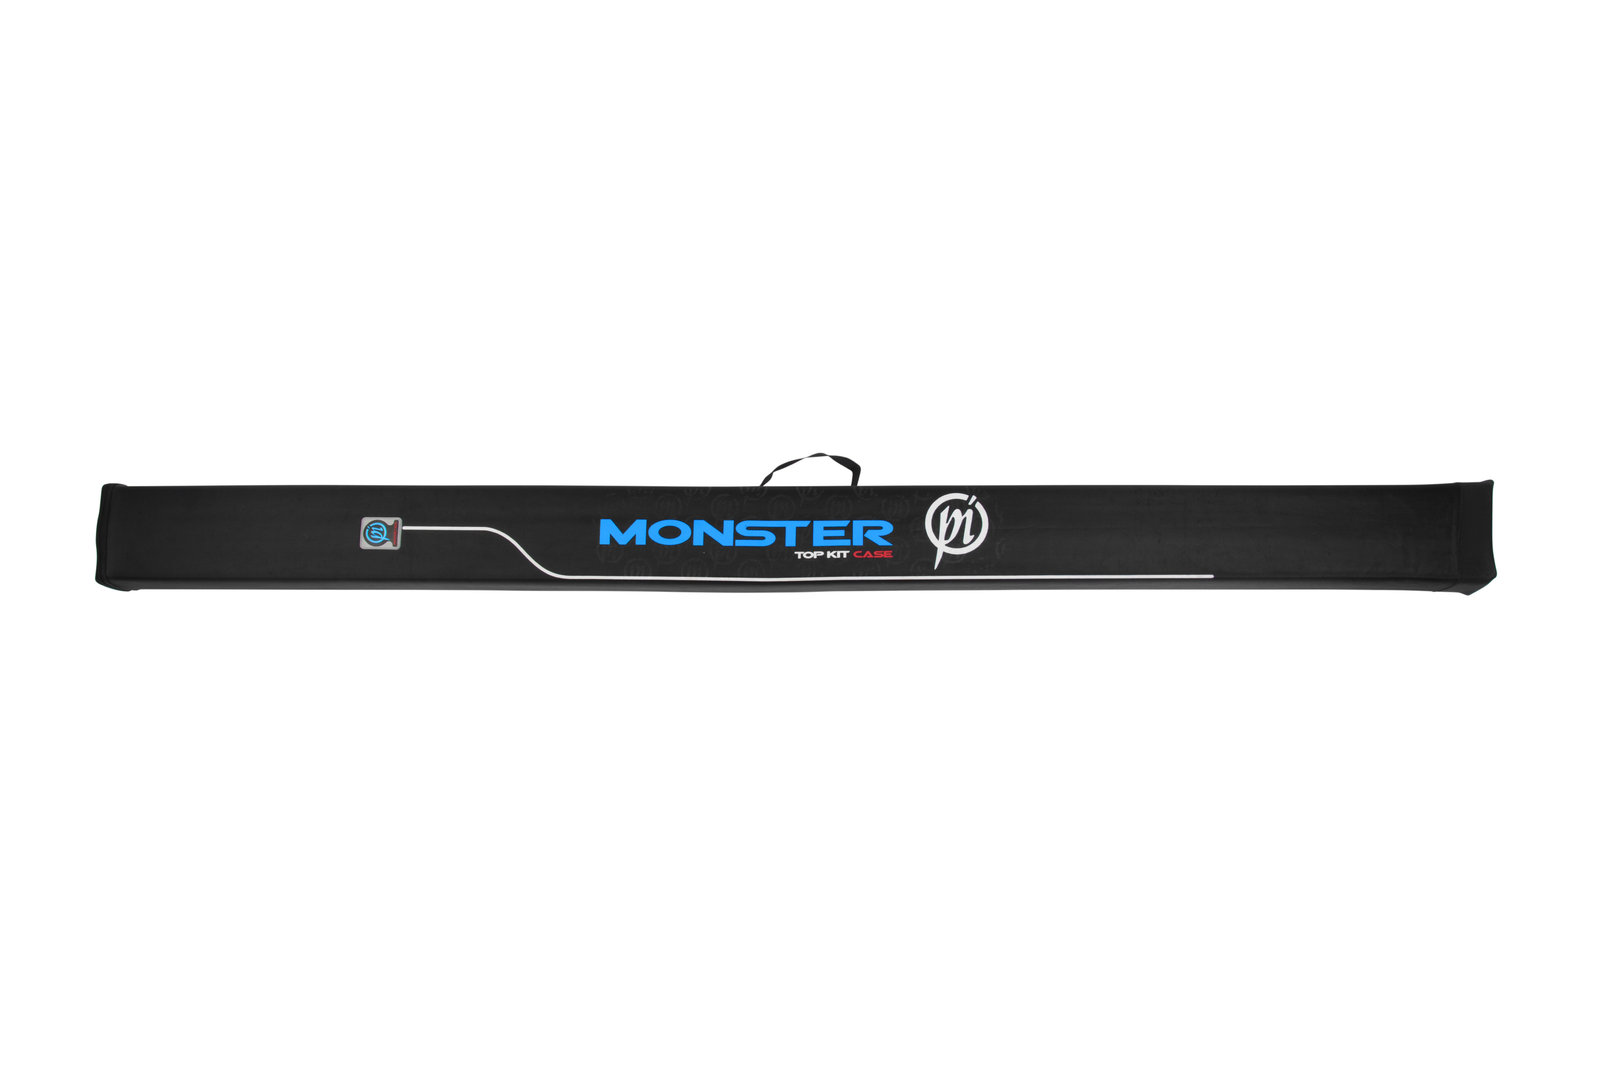 Monster® Top Kit Cases